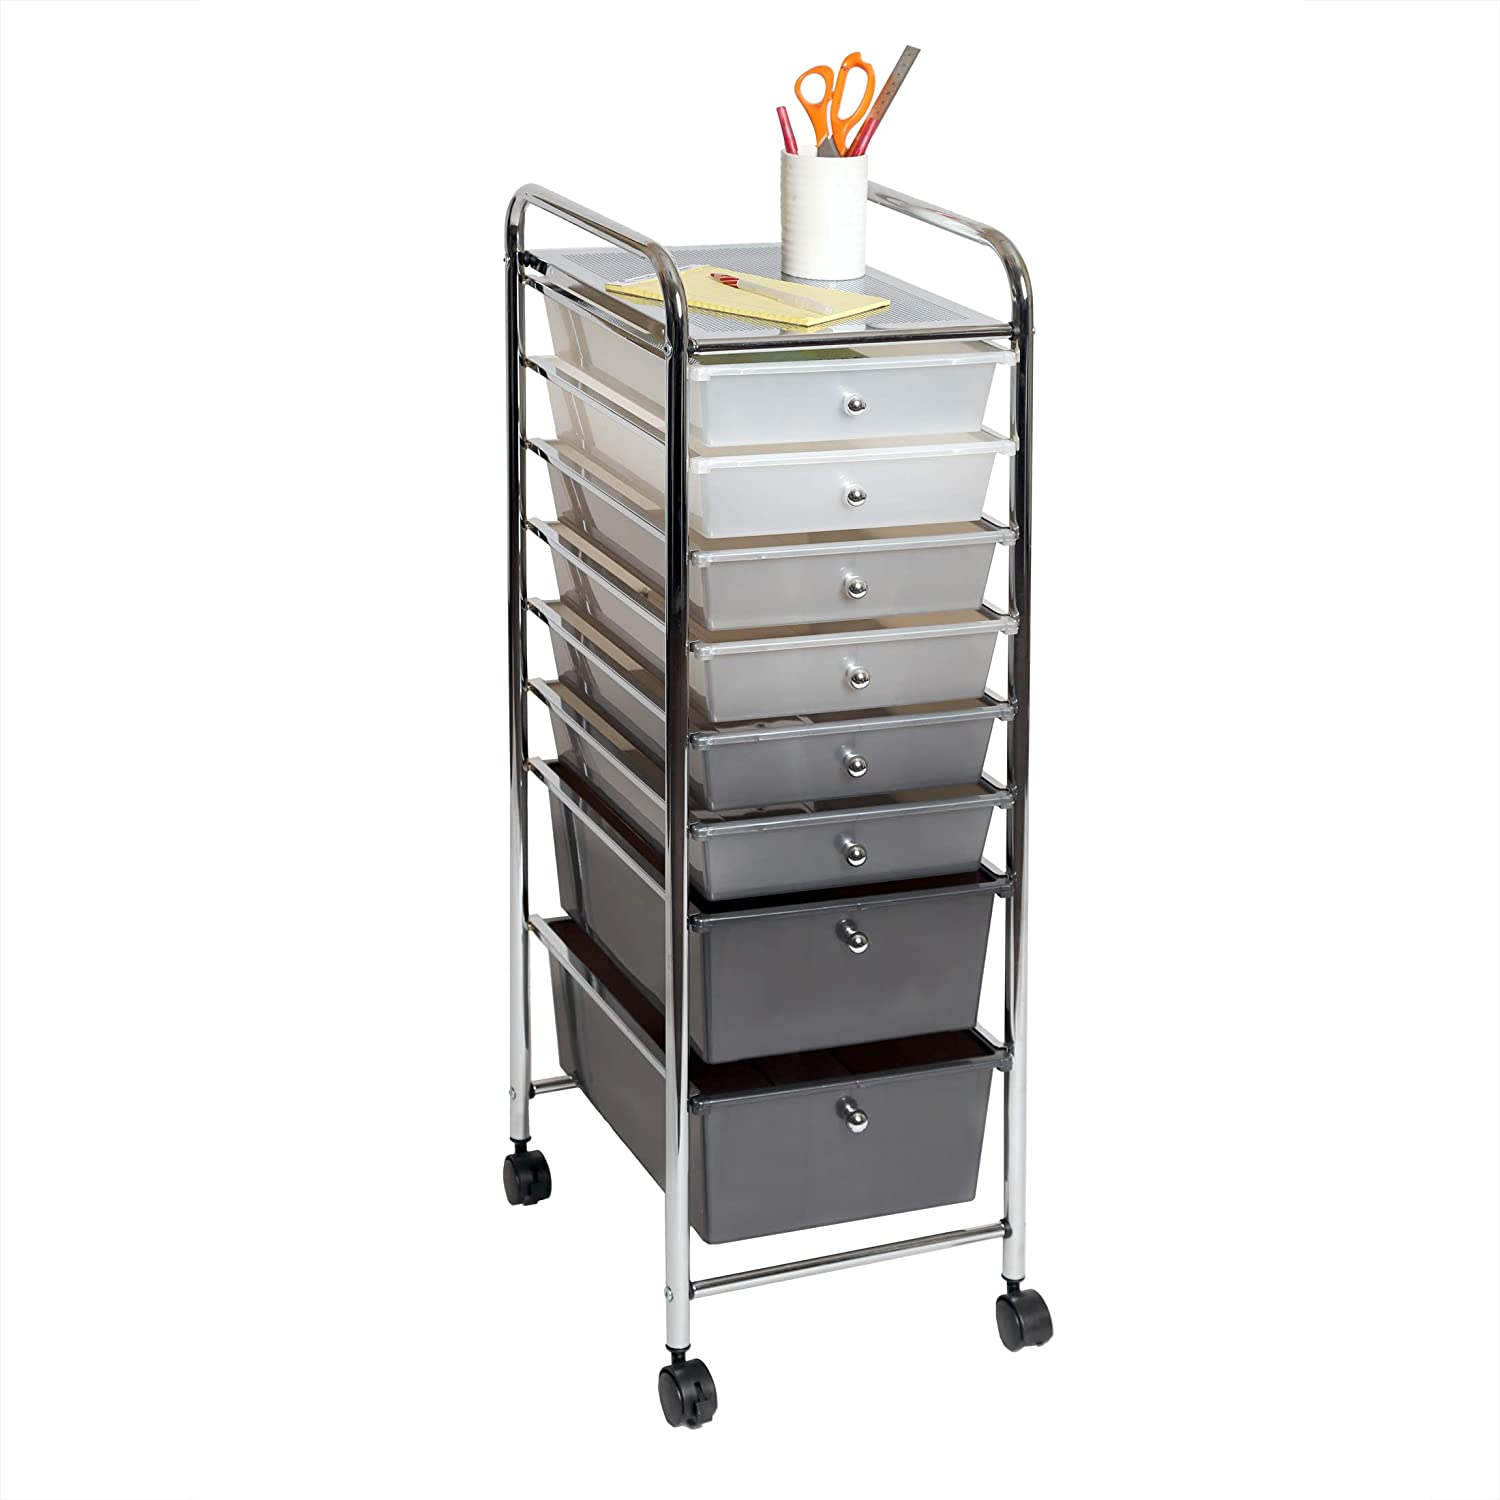 Seville Classics 8-Drawer Multipurpose Mobile Rolling Utility Storage Bin Organizer Cart, Gradient Gray: Home & Kitchen